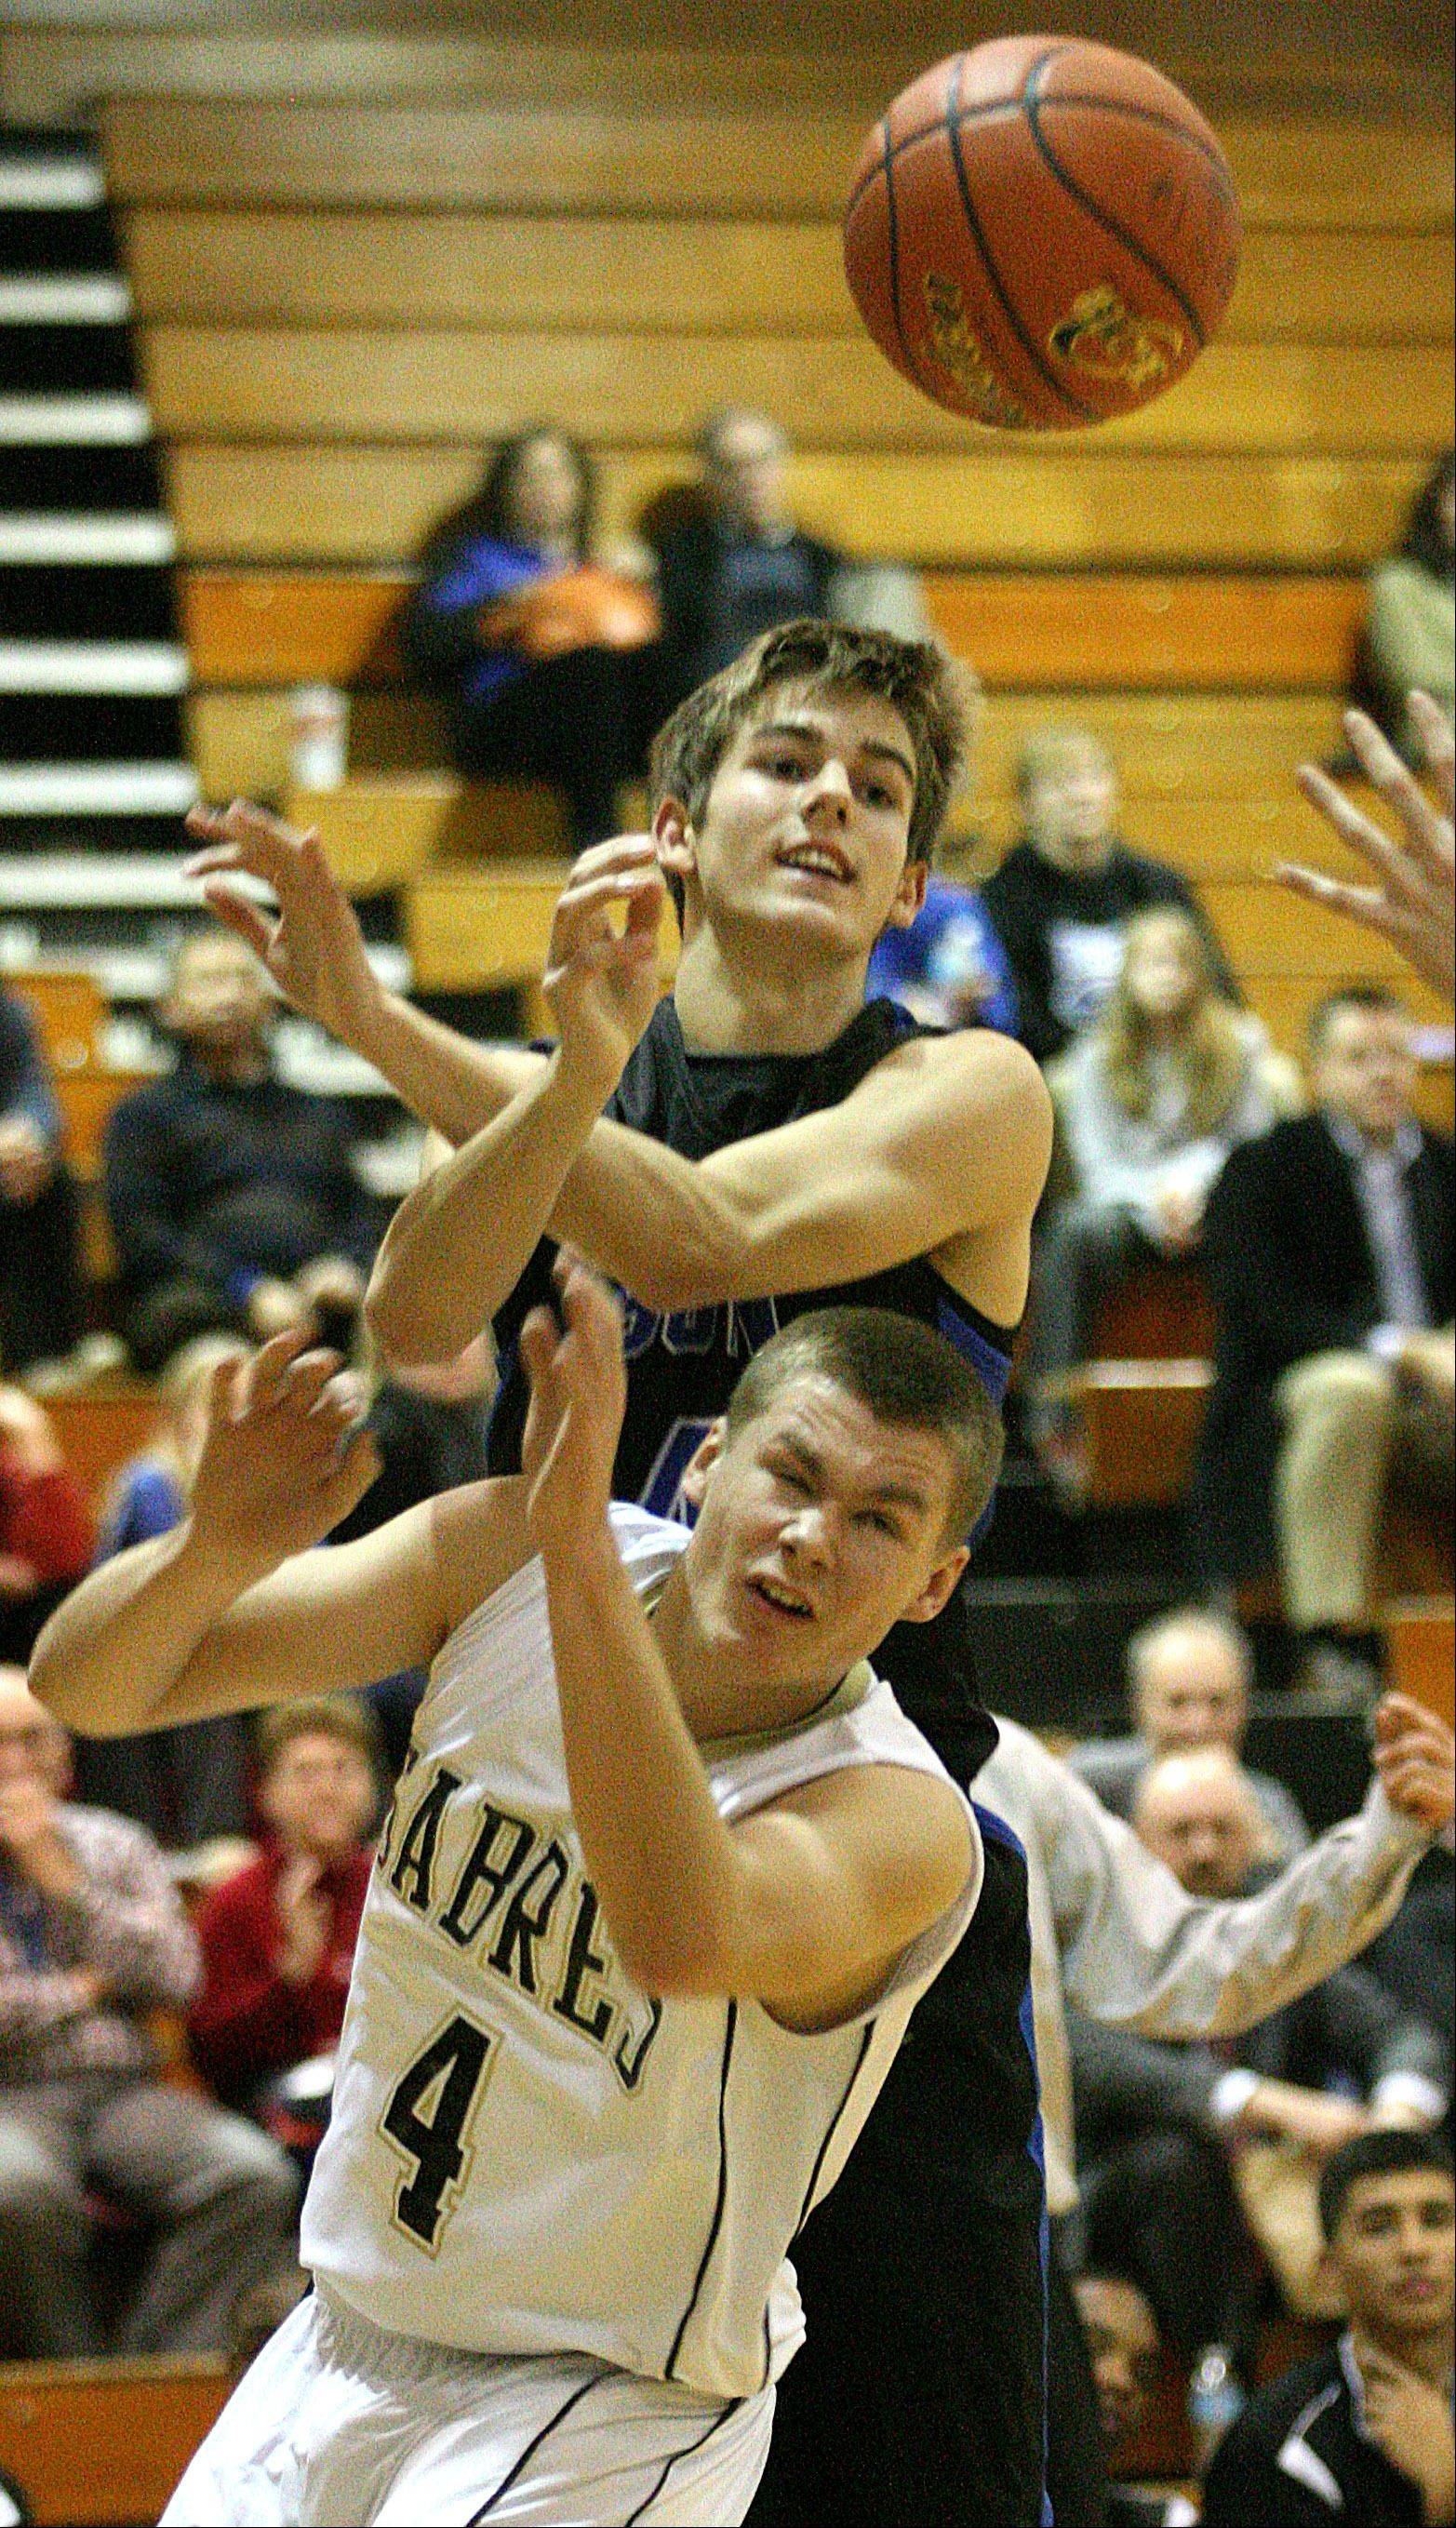 Streamwood's Jacob Siewert, bottom, and St Charles North's Jake Ludwig look for the ball during Thursday's basketball game.